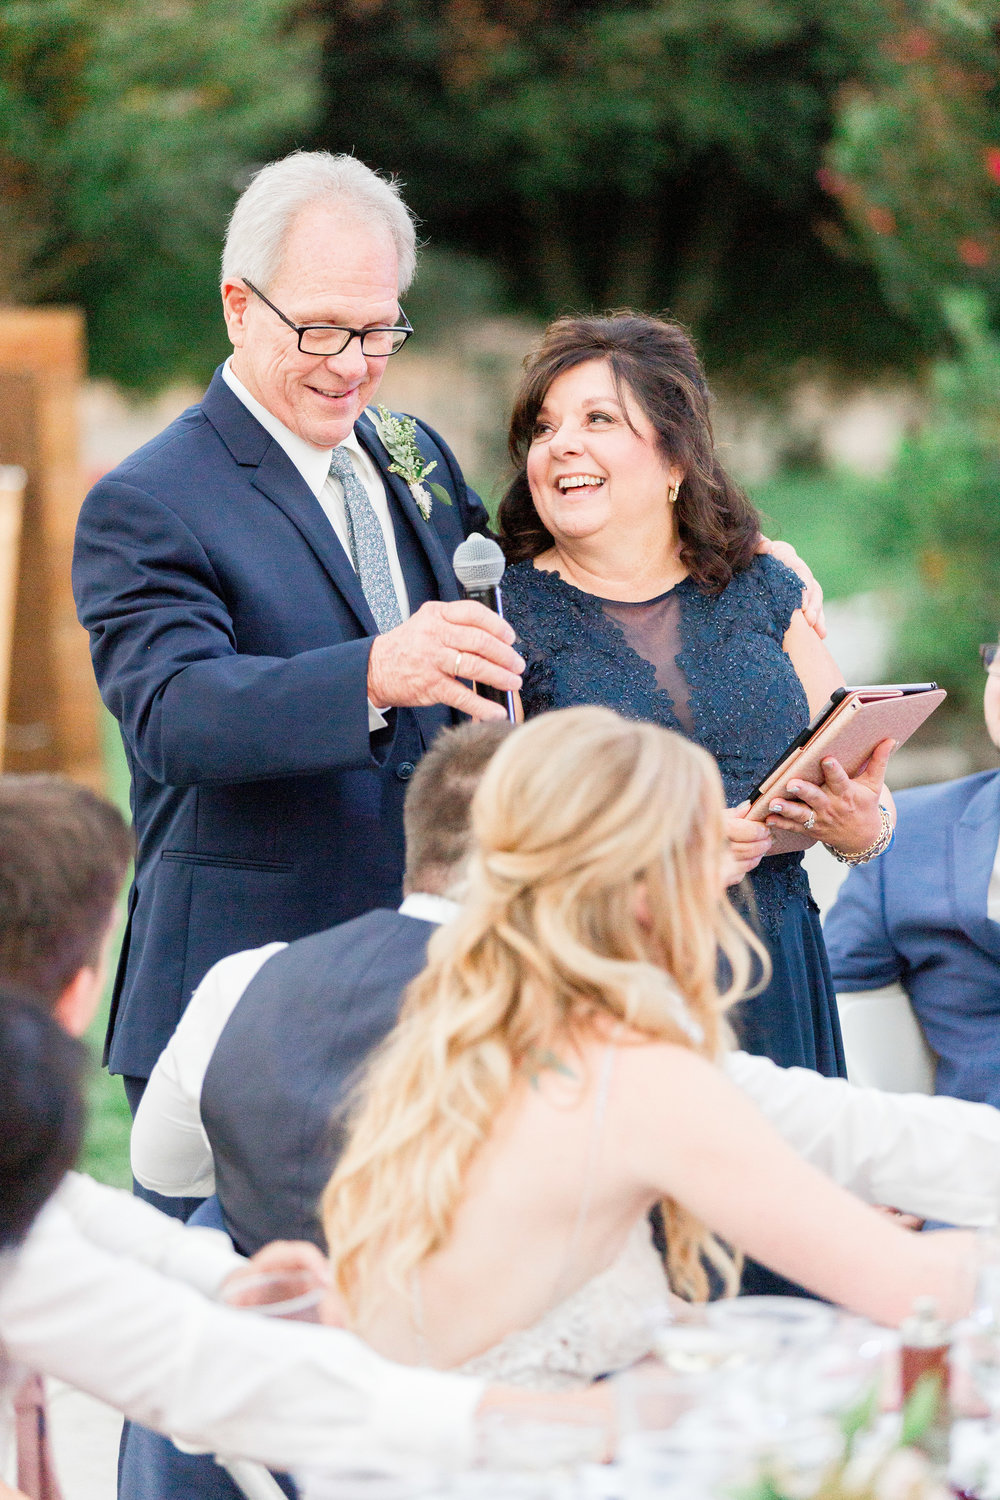 Mettler-Family-Vineyards-Wedding-Photos (240 of 274).jpg